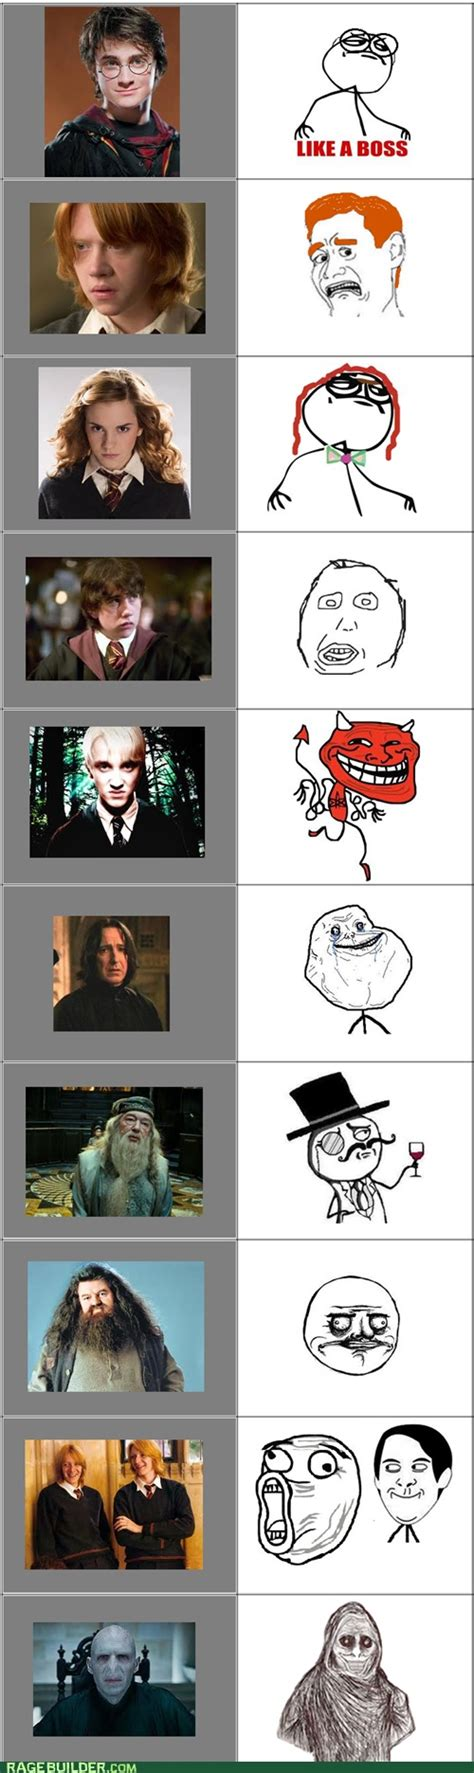 Funny Meme Characters - 25 best ideas about voldemort meme on pinterest funny